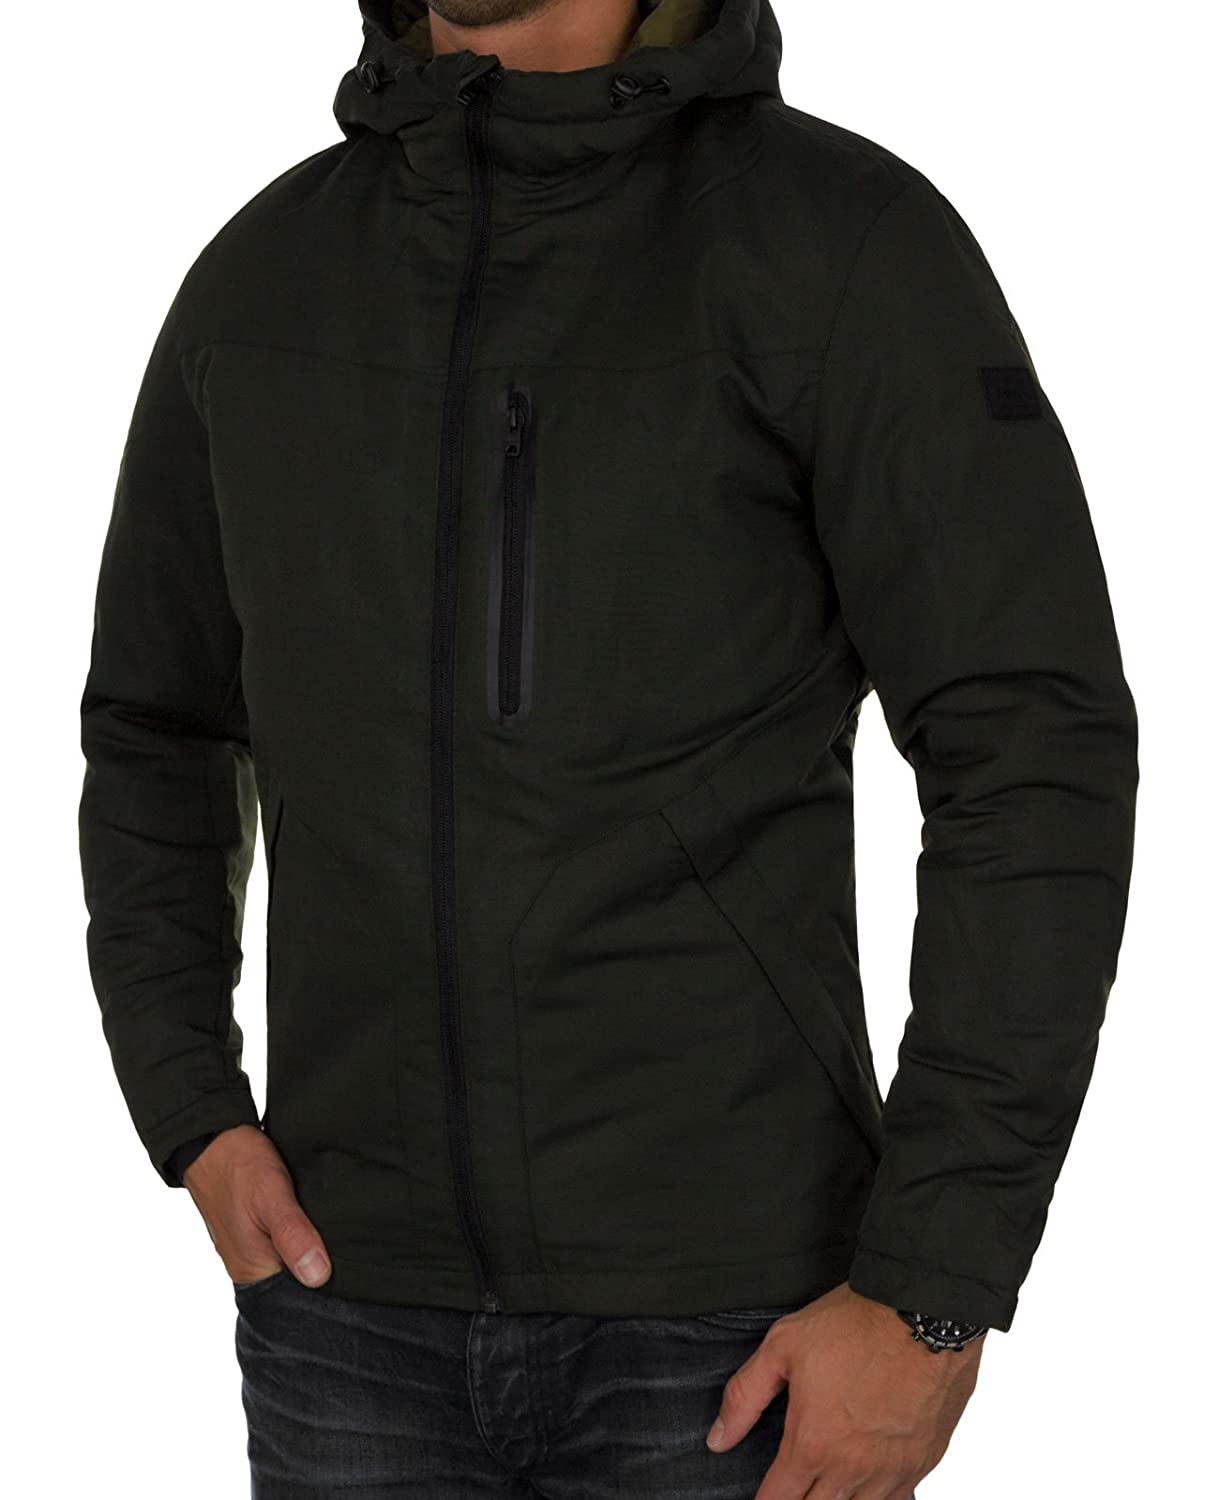 Jackamp; Jones Herren One Jcocool Fit Jacke Outdoorjacke Hood Futter Winterjacke Jacket Kapuze Warm kOX0wnPN8Z